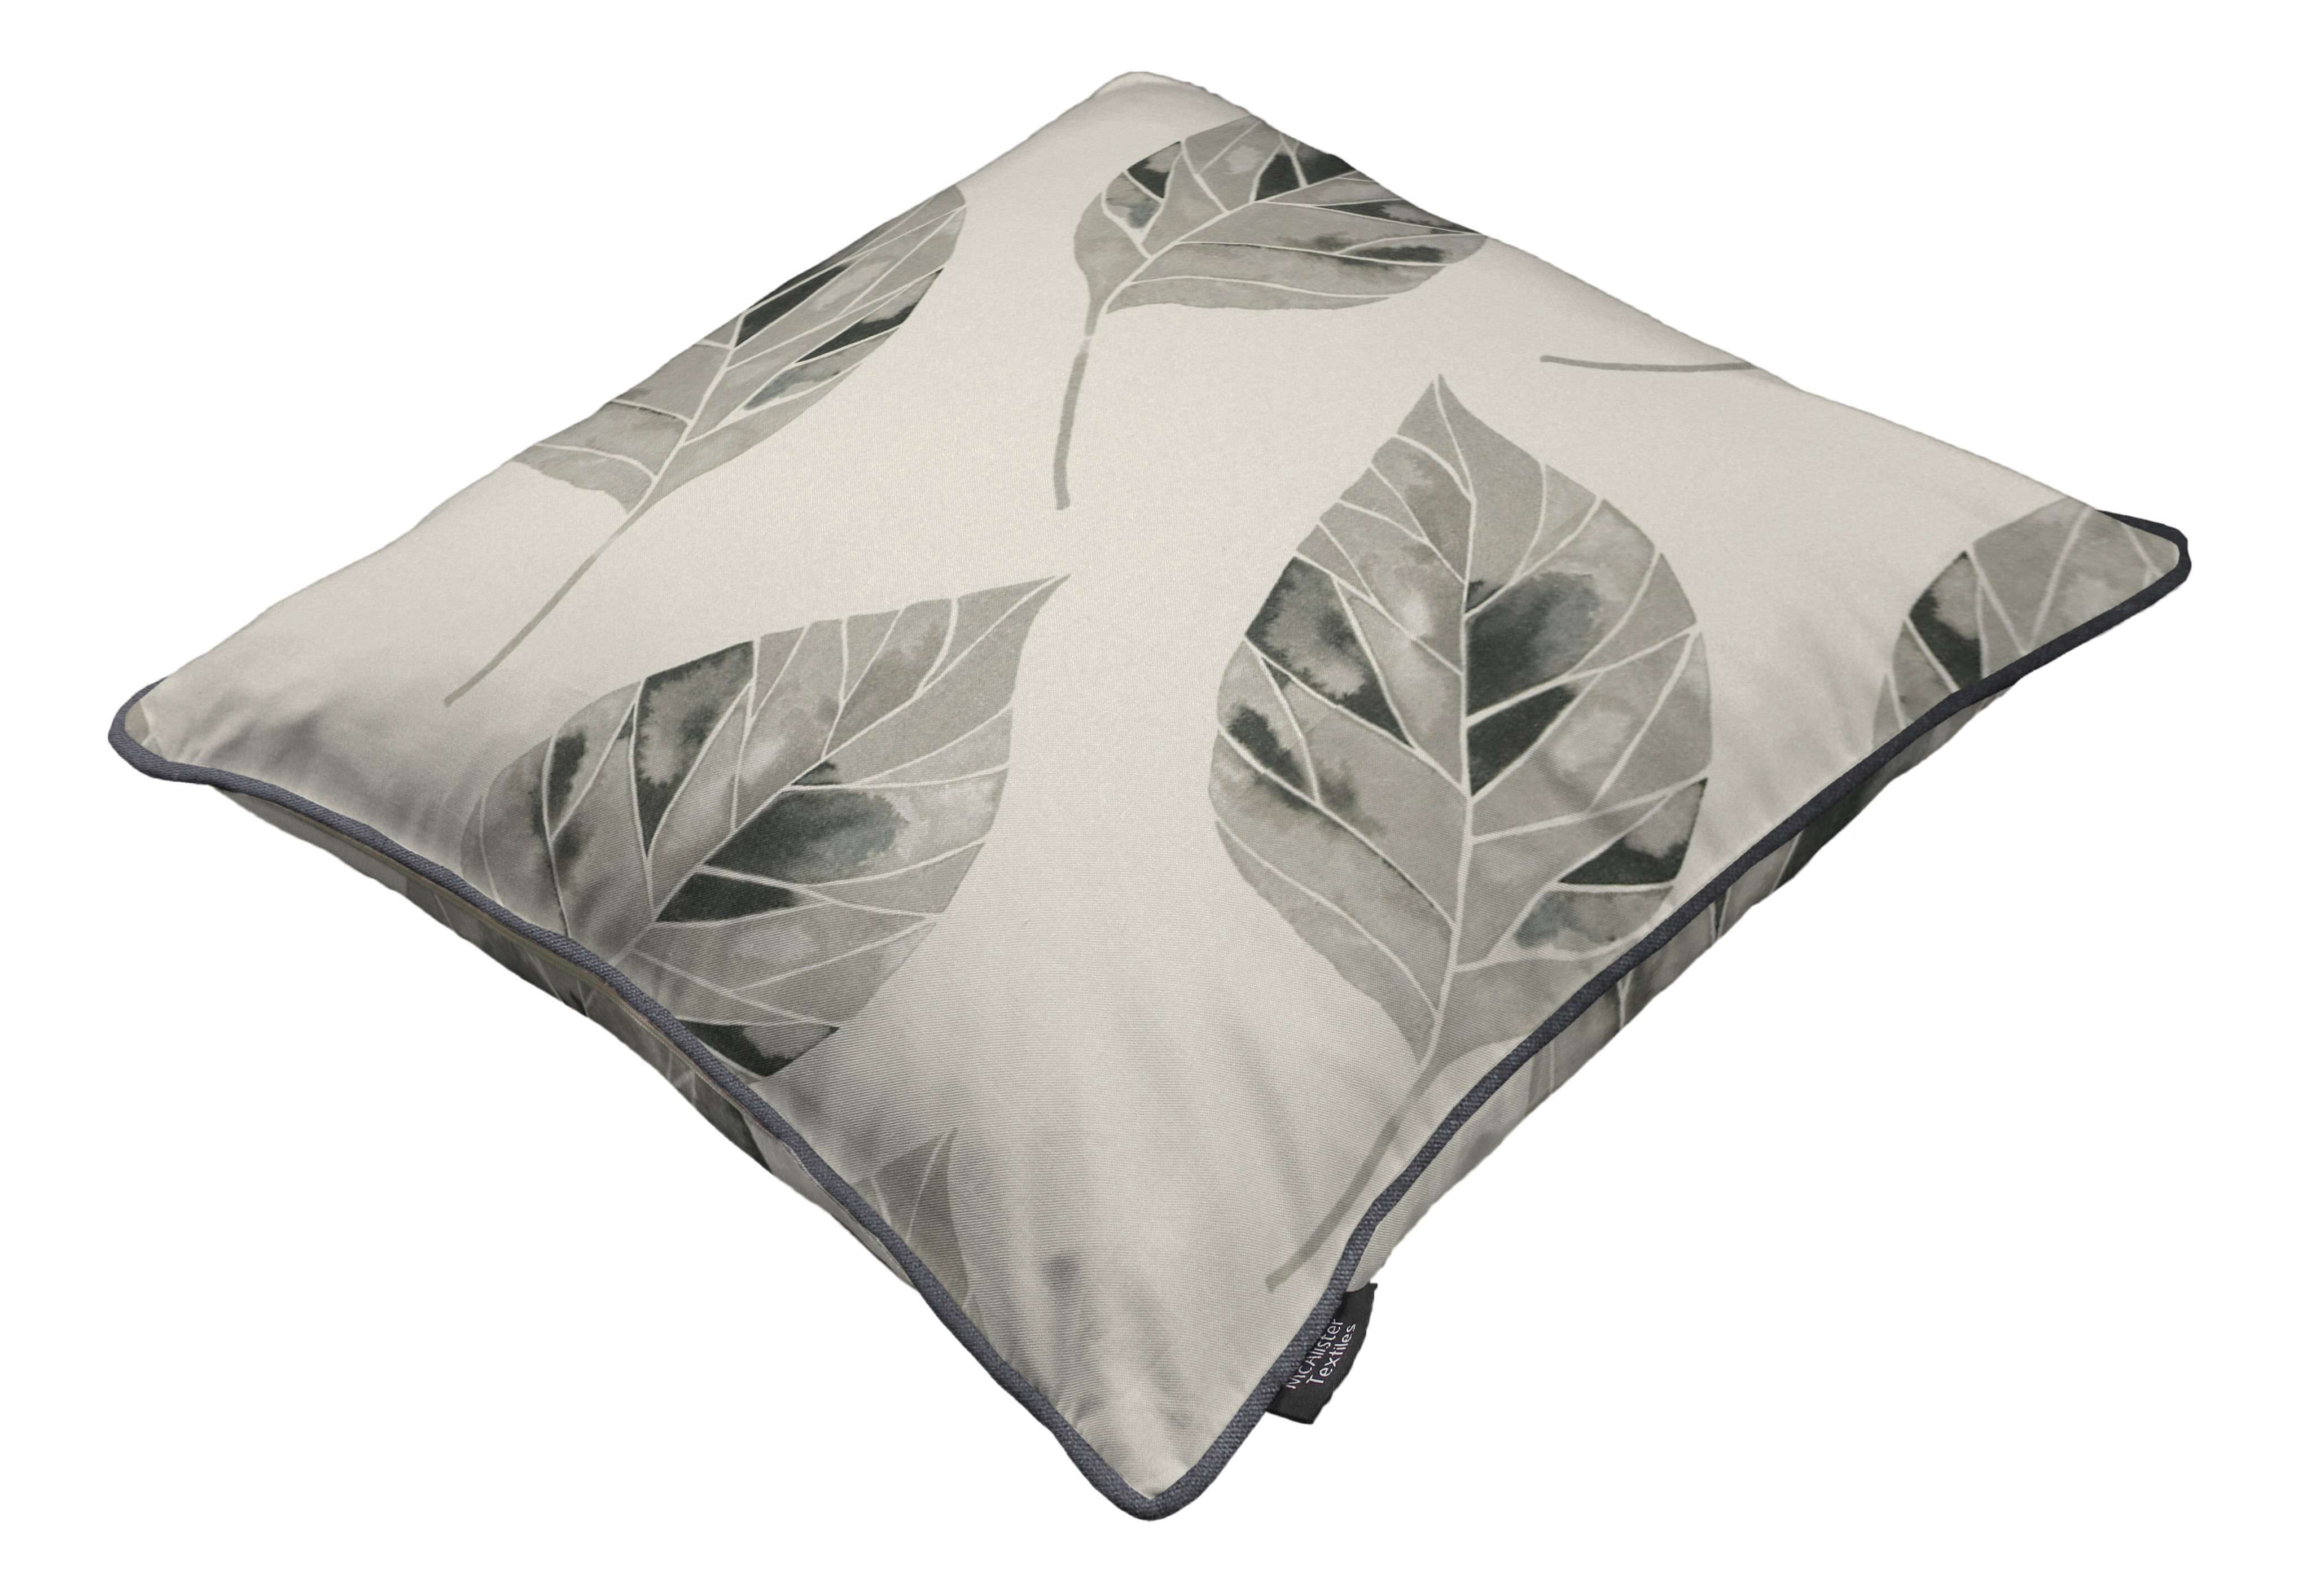 McAlister Textiles Leaf Soft Grey Floral Cotton Print Piped Edge Pillows Pillow